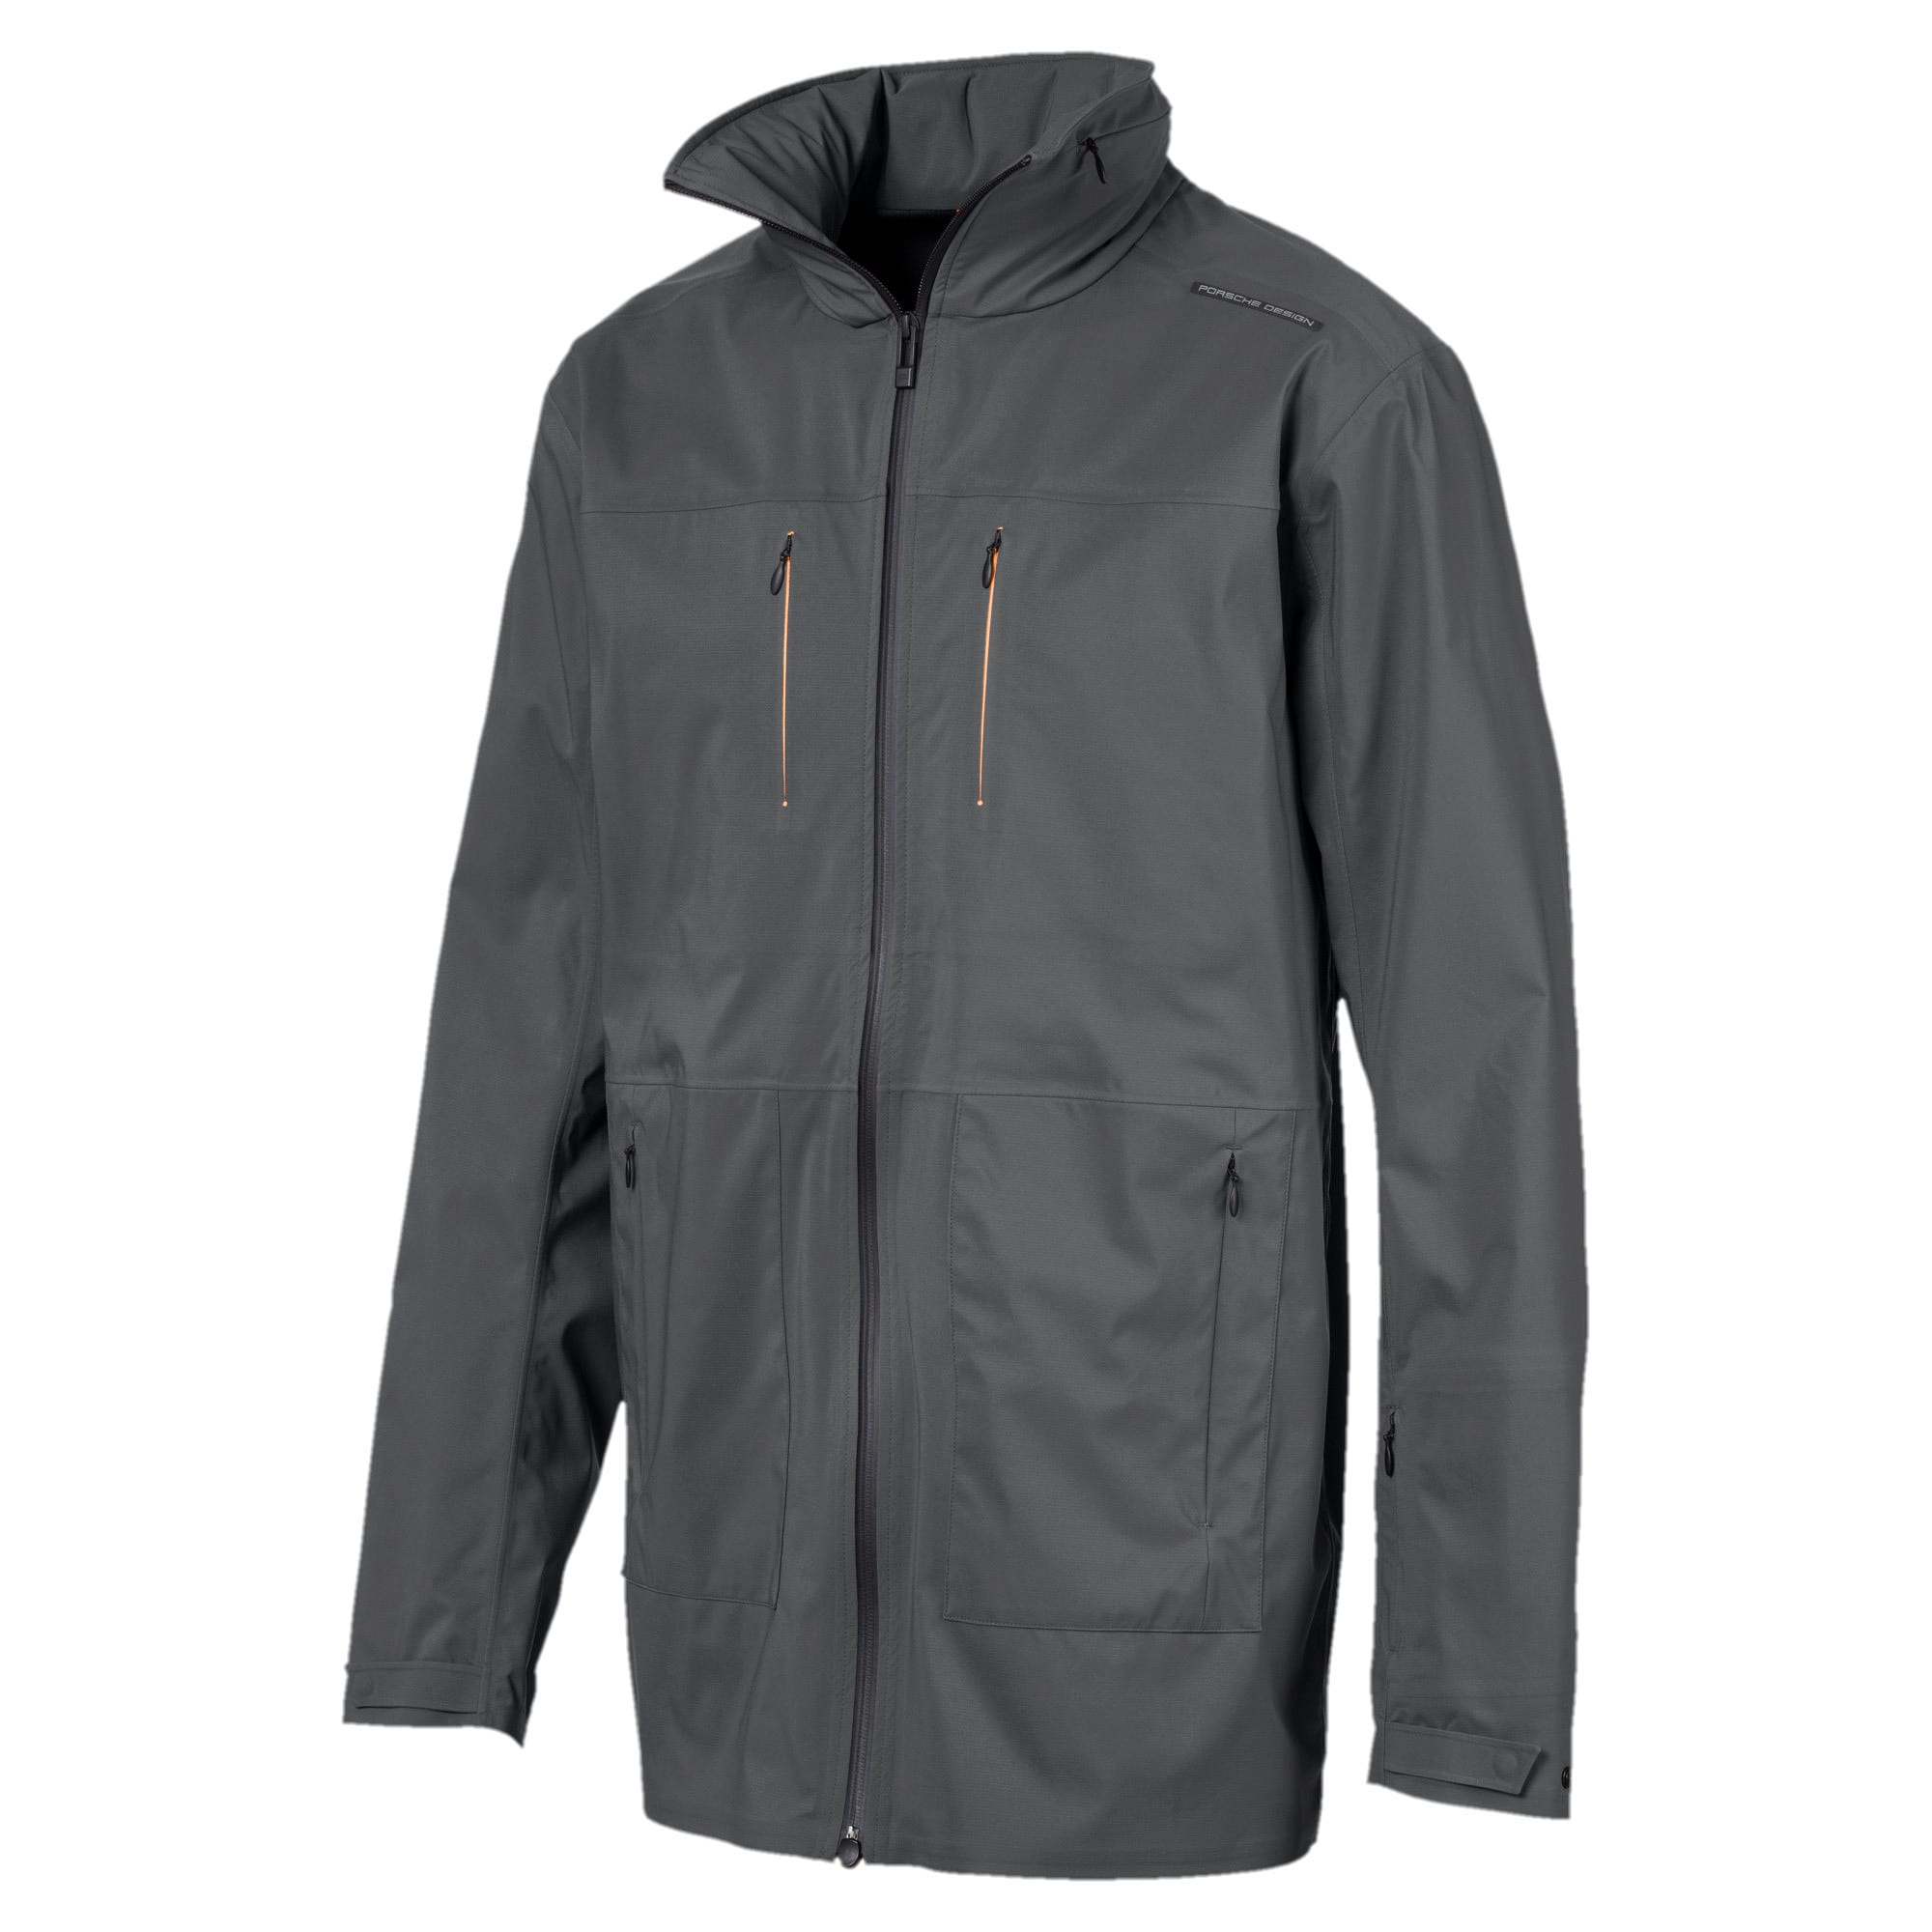 Thumbnail 1 of Blouson Porsche Design RCT pour homme, Asphalt, medium